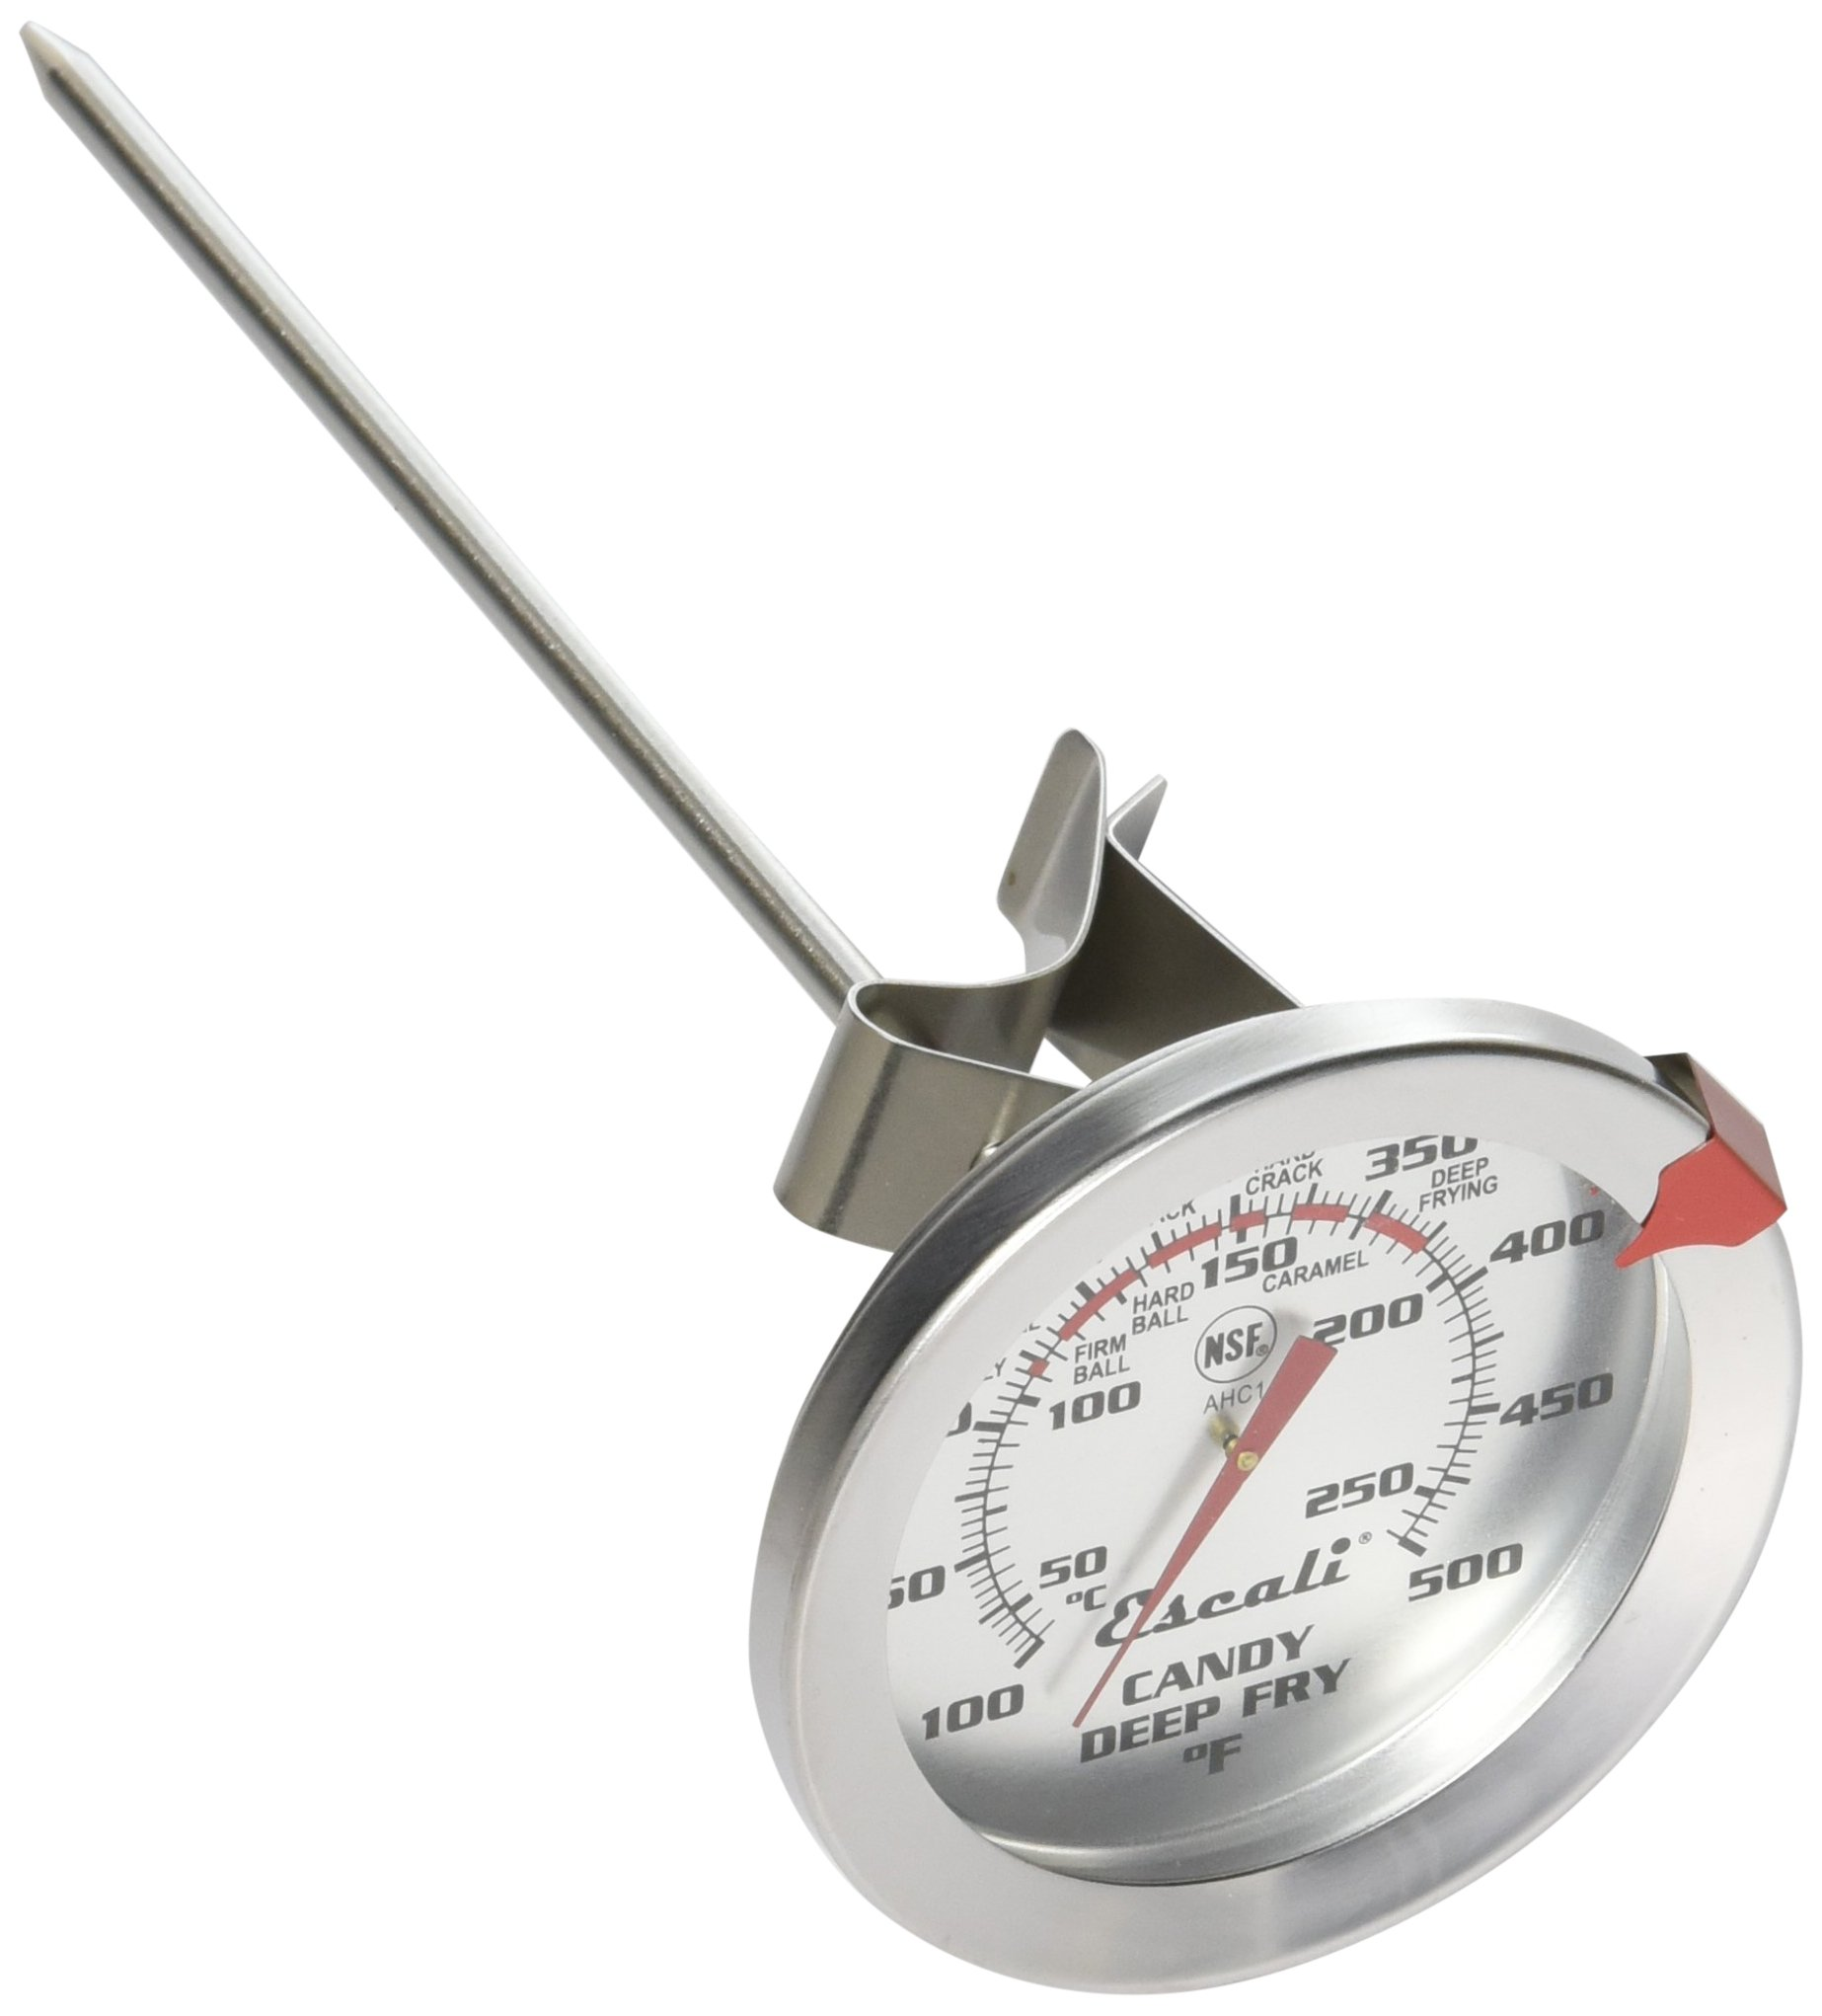 Escali AHC1 NSF Listed Candy/Deep Fry Thermometer with 5.5'' Probe, Silver